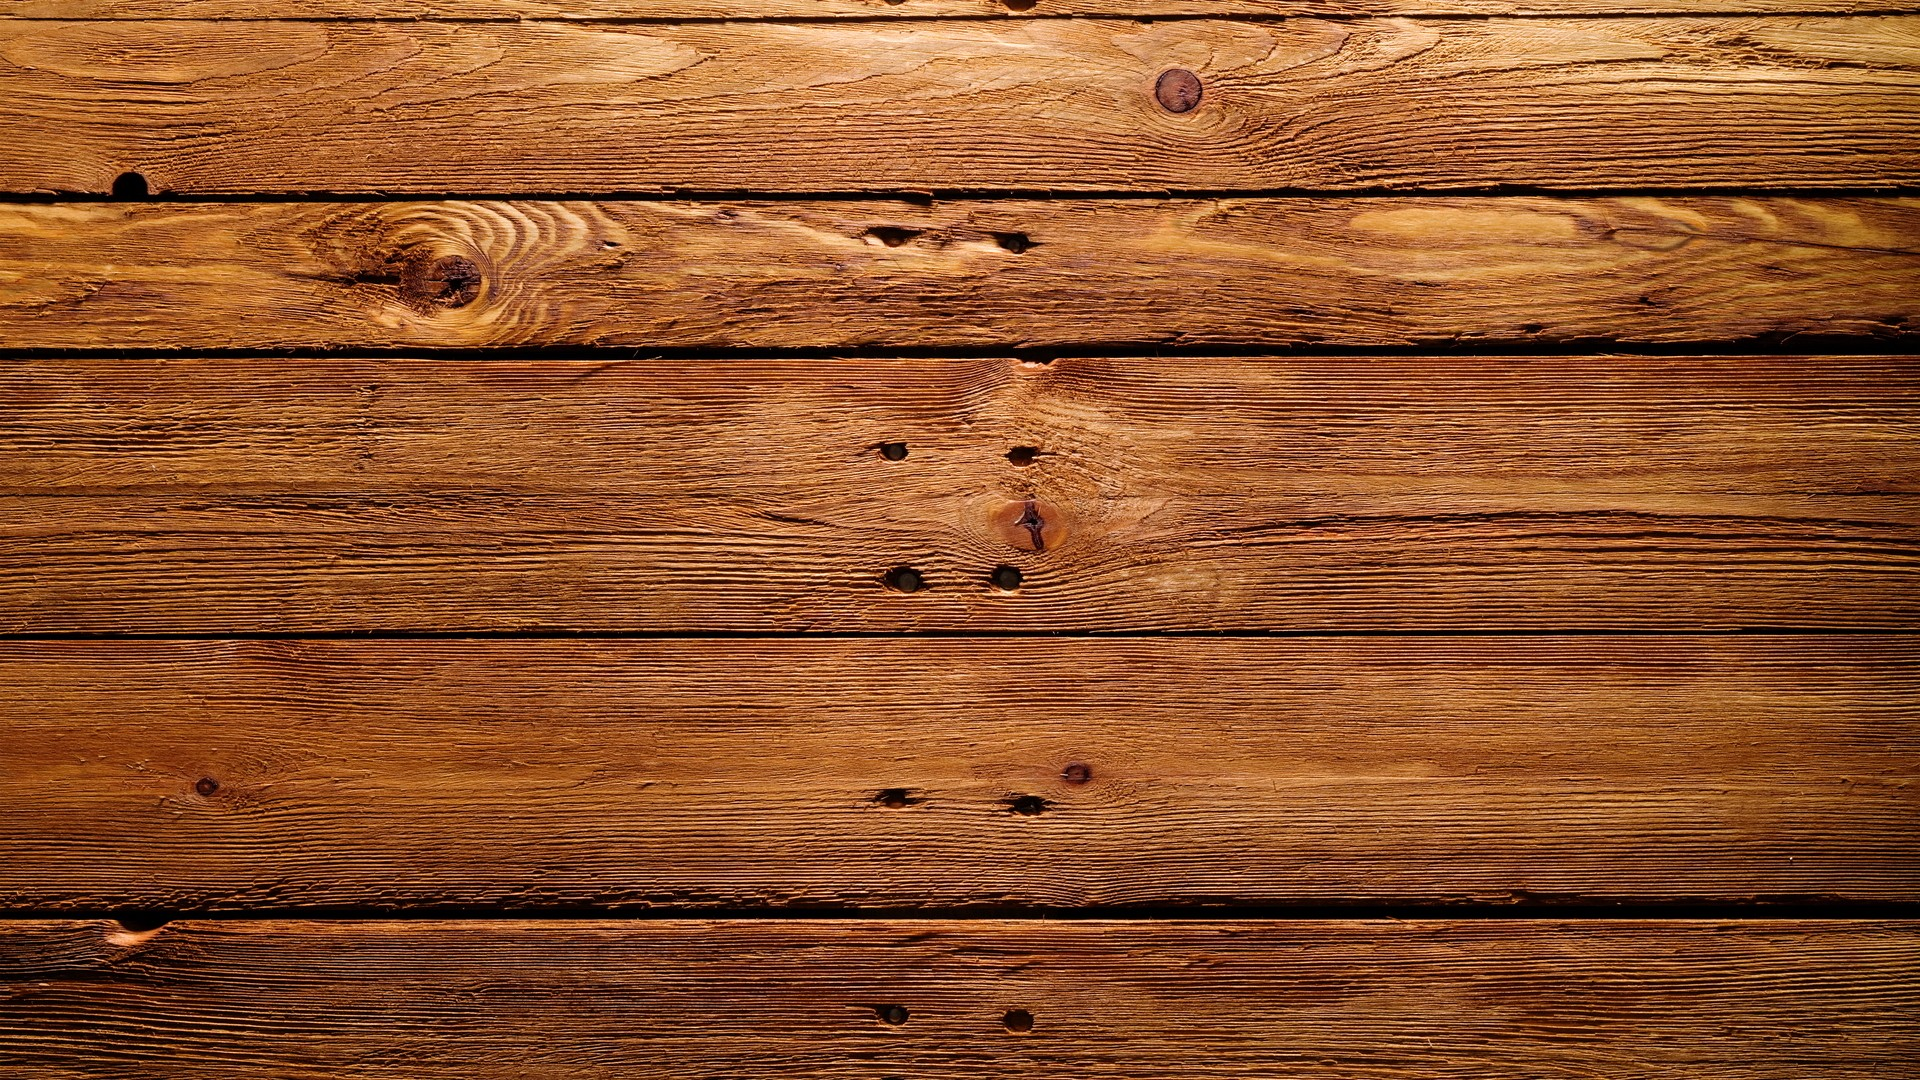 10 Best images about rustic on Pinterest | Wood texture, Wood